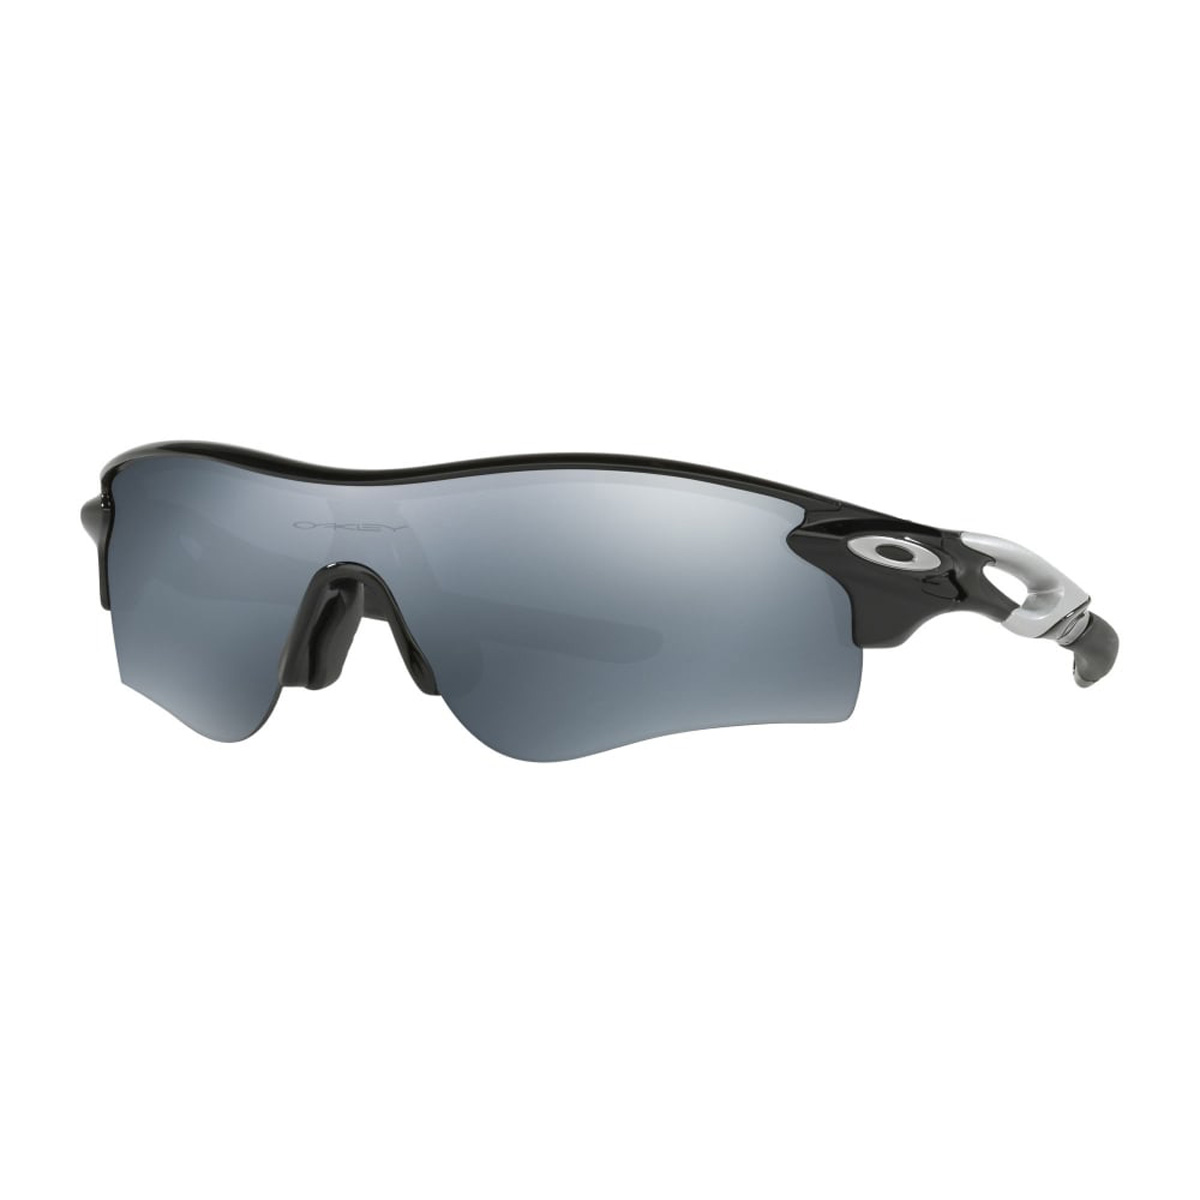 d9a7d536a49 Oakley Radar Lock Path Sunglasses Polished Black Black Iridium VR28 ...